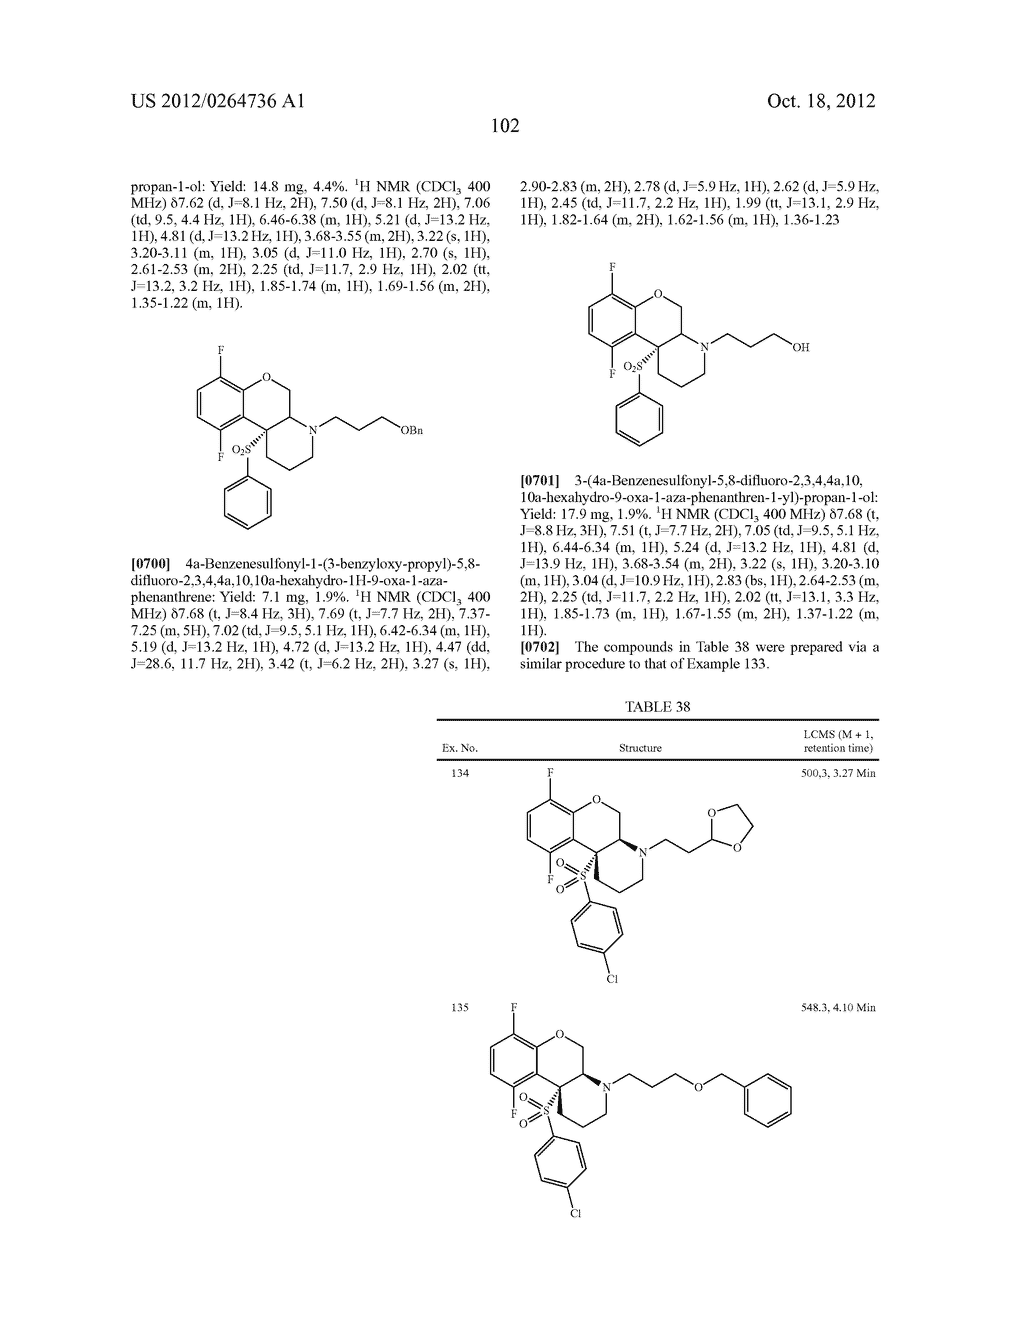 BENZENESULFONYL-CHROMANE, THIOCHROMANE, TETRAHYDRONAPHTHALENE AND RELATED     GAMMA SECRETASE INHIBITORS - diagram, schematic, and image 103